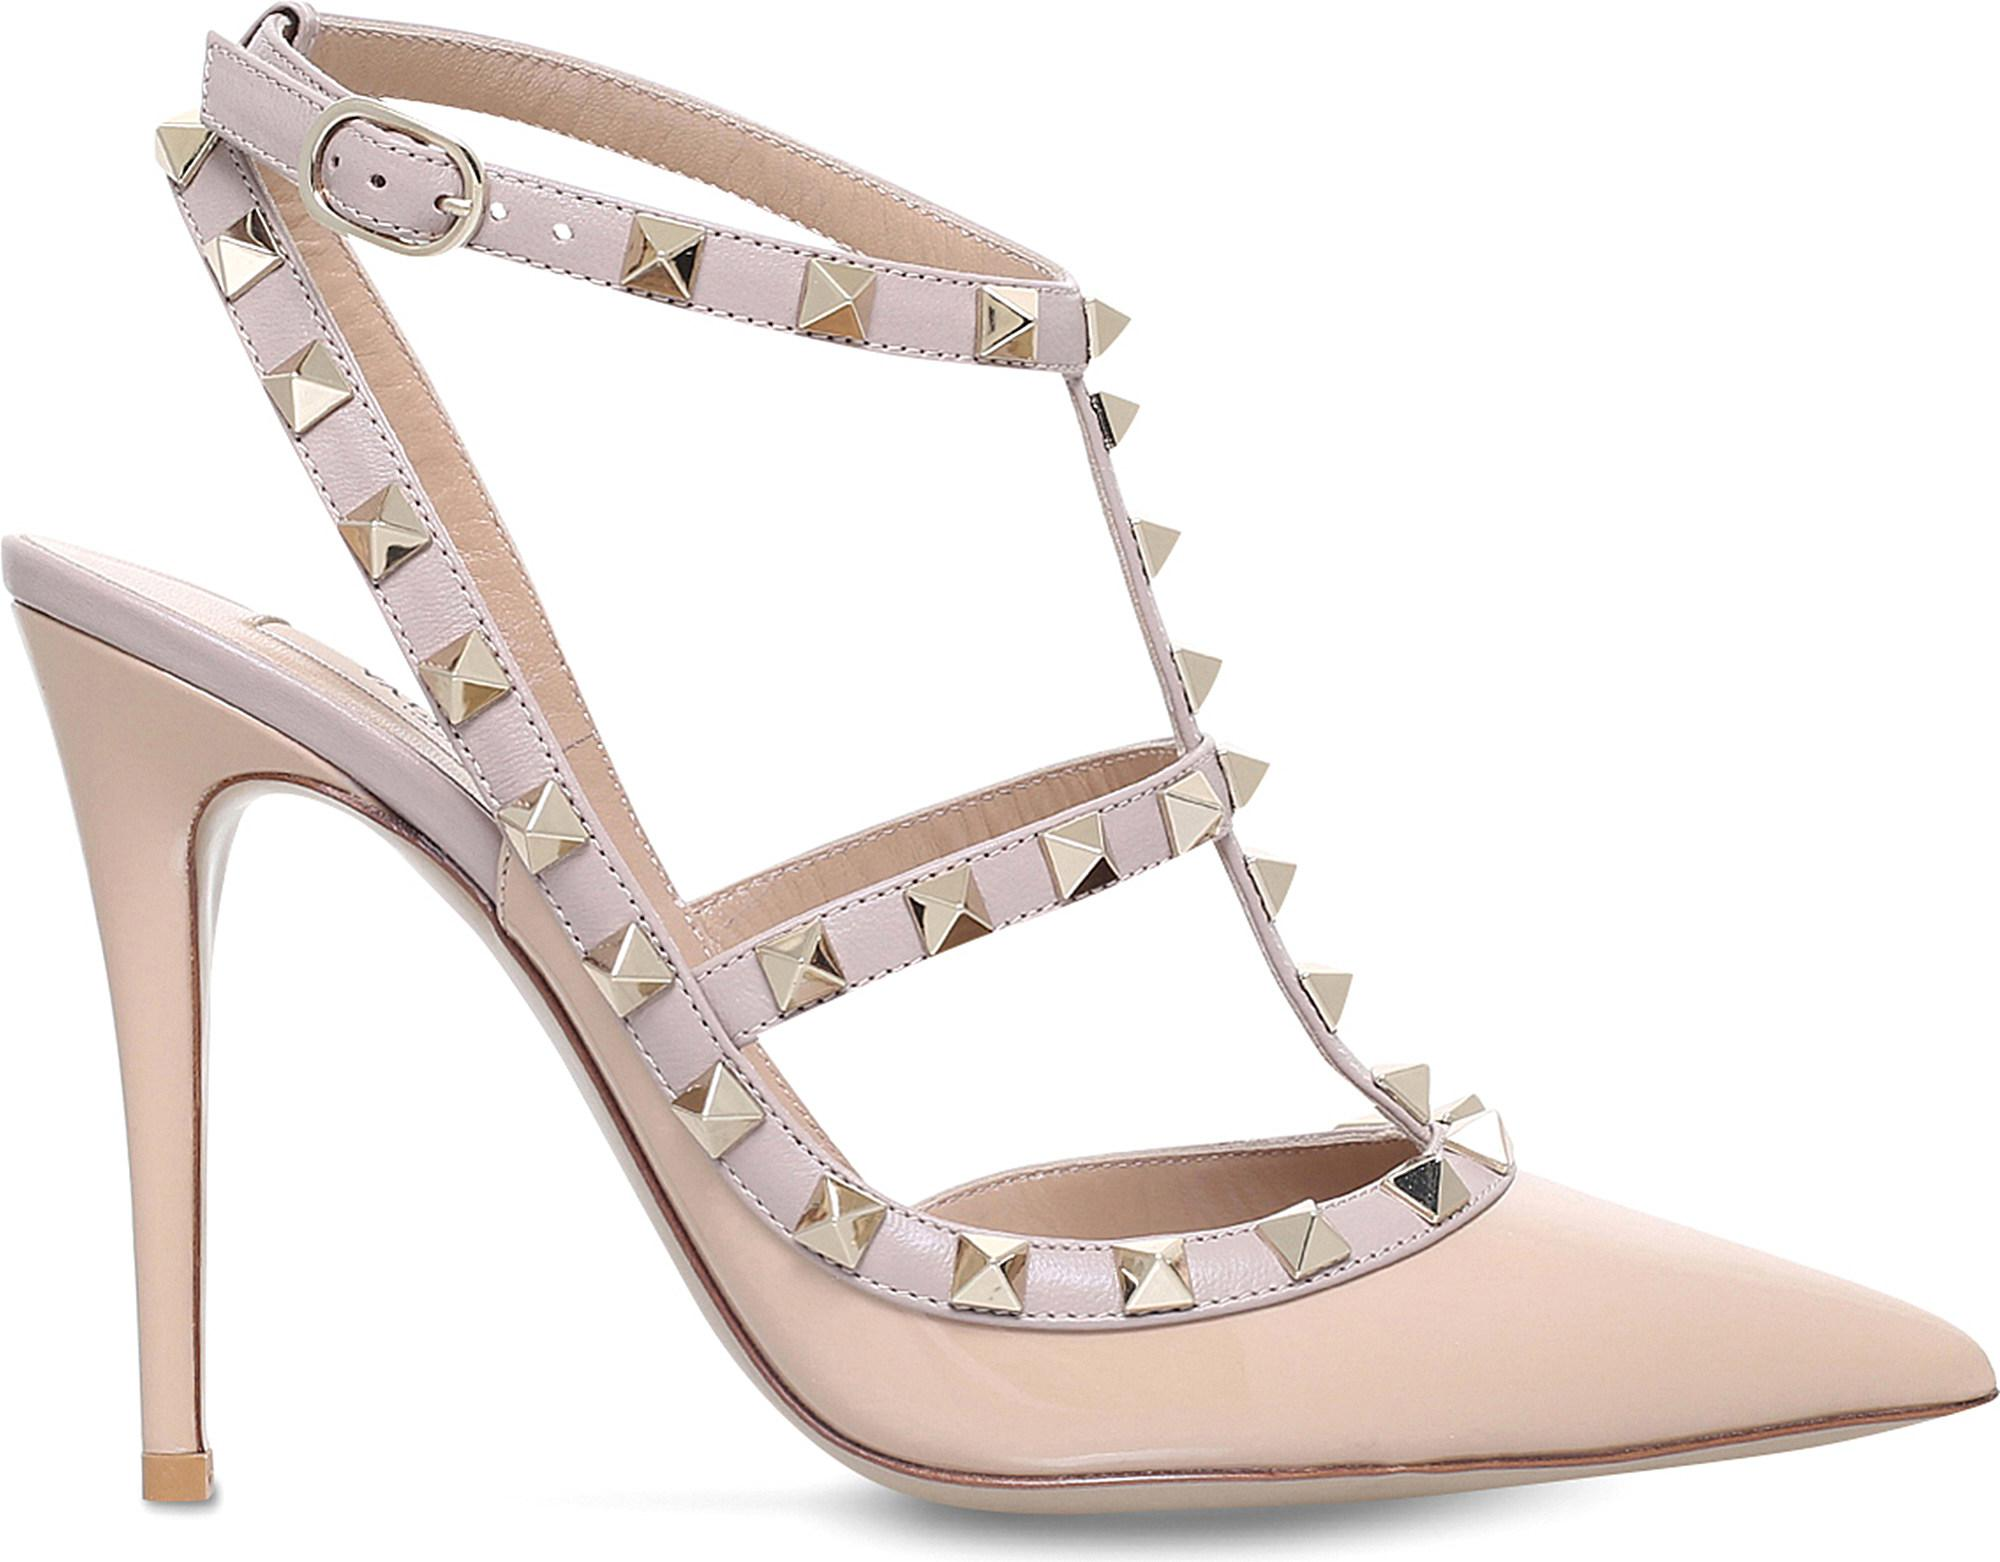 415af06b602 Valentino. Women s Rockstud 100 Leather Courts